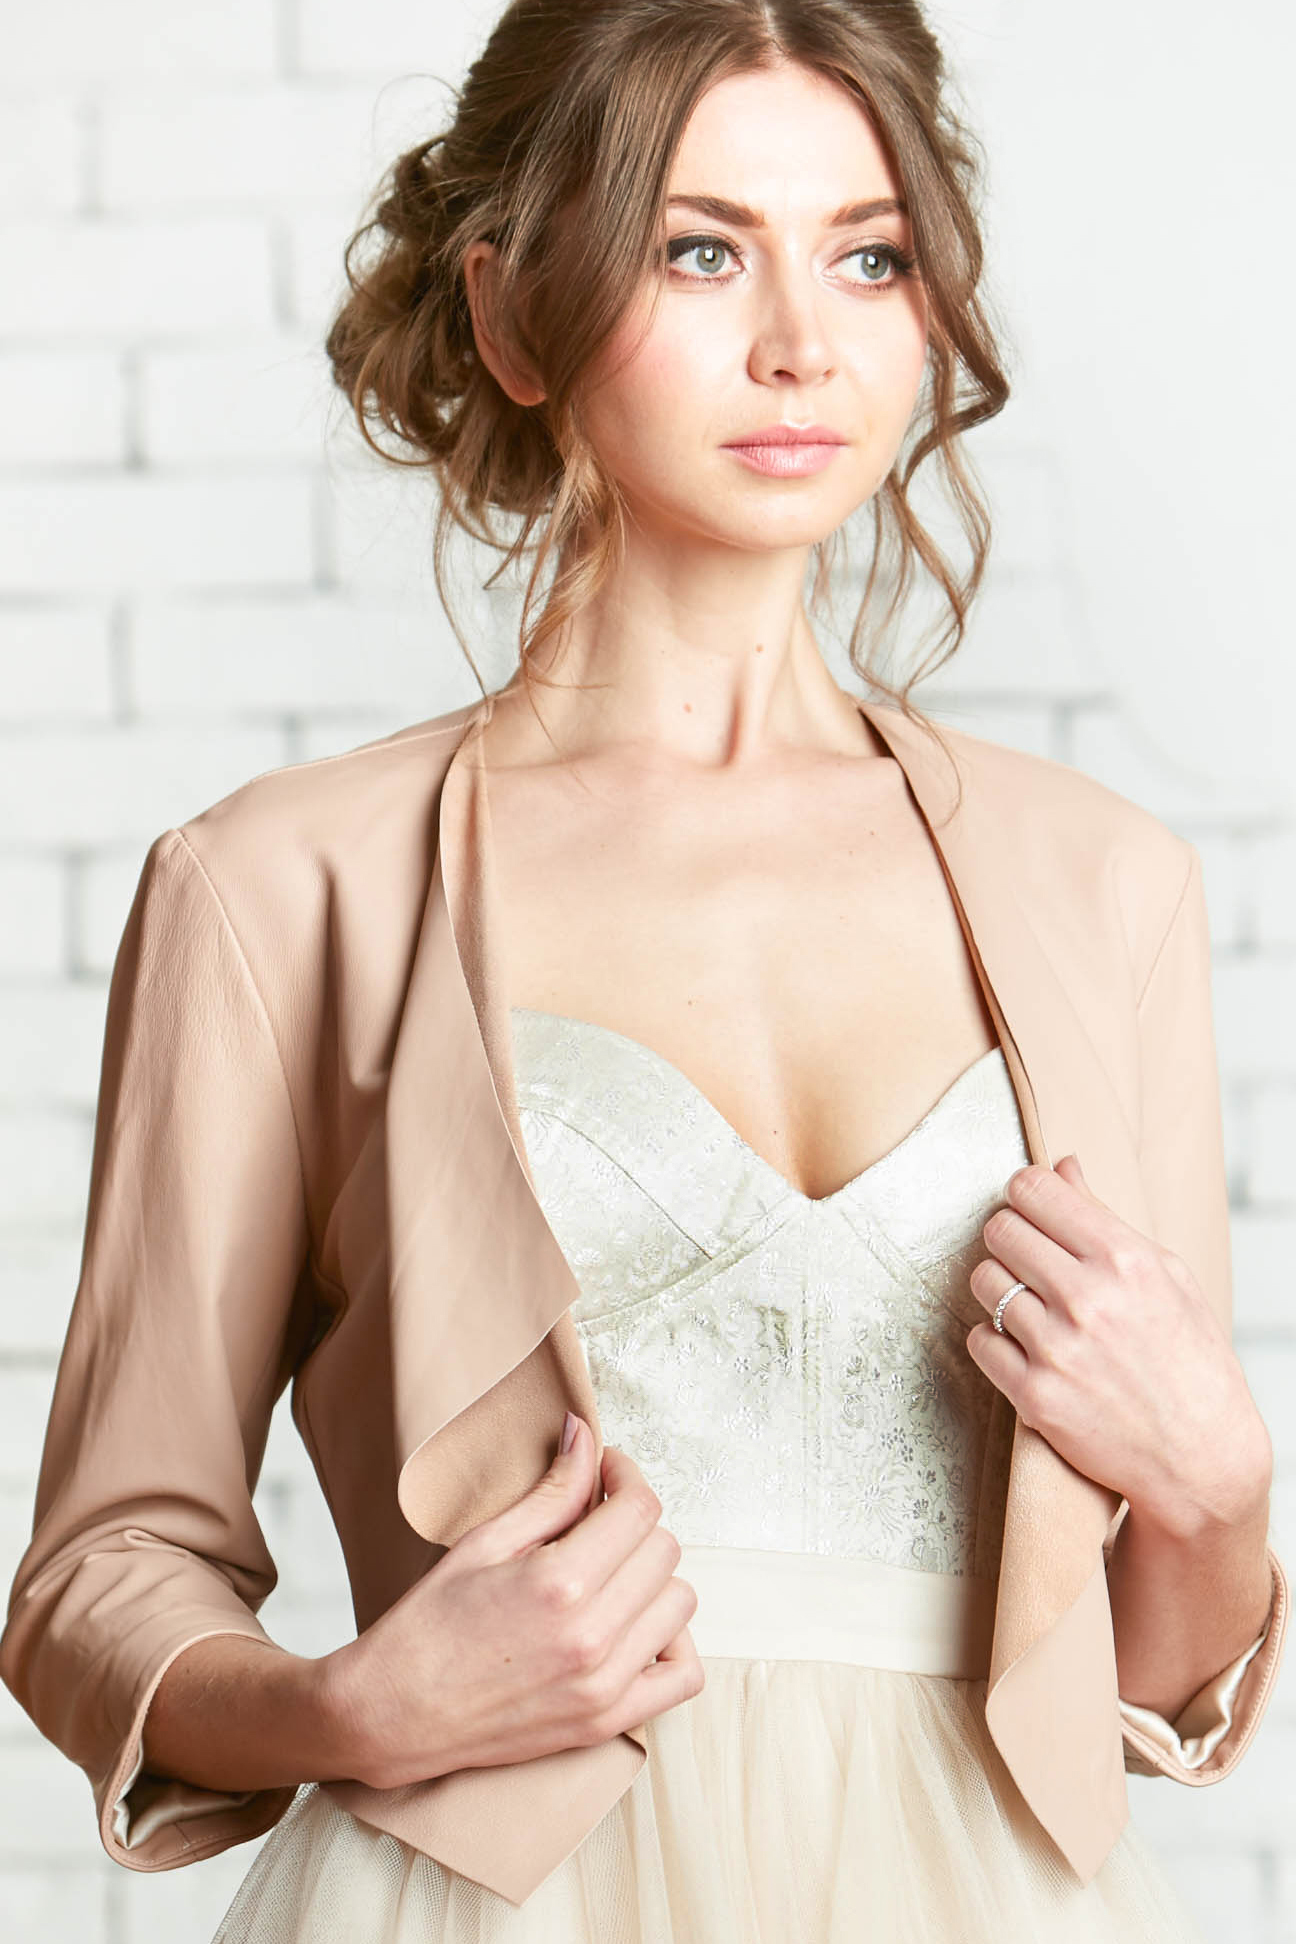 VeronaLeatherJacket_1front_Draped_Wedding_Look_Coverup_Boho_Chic.jpg